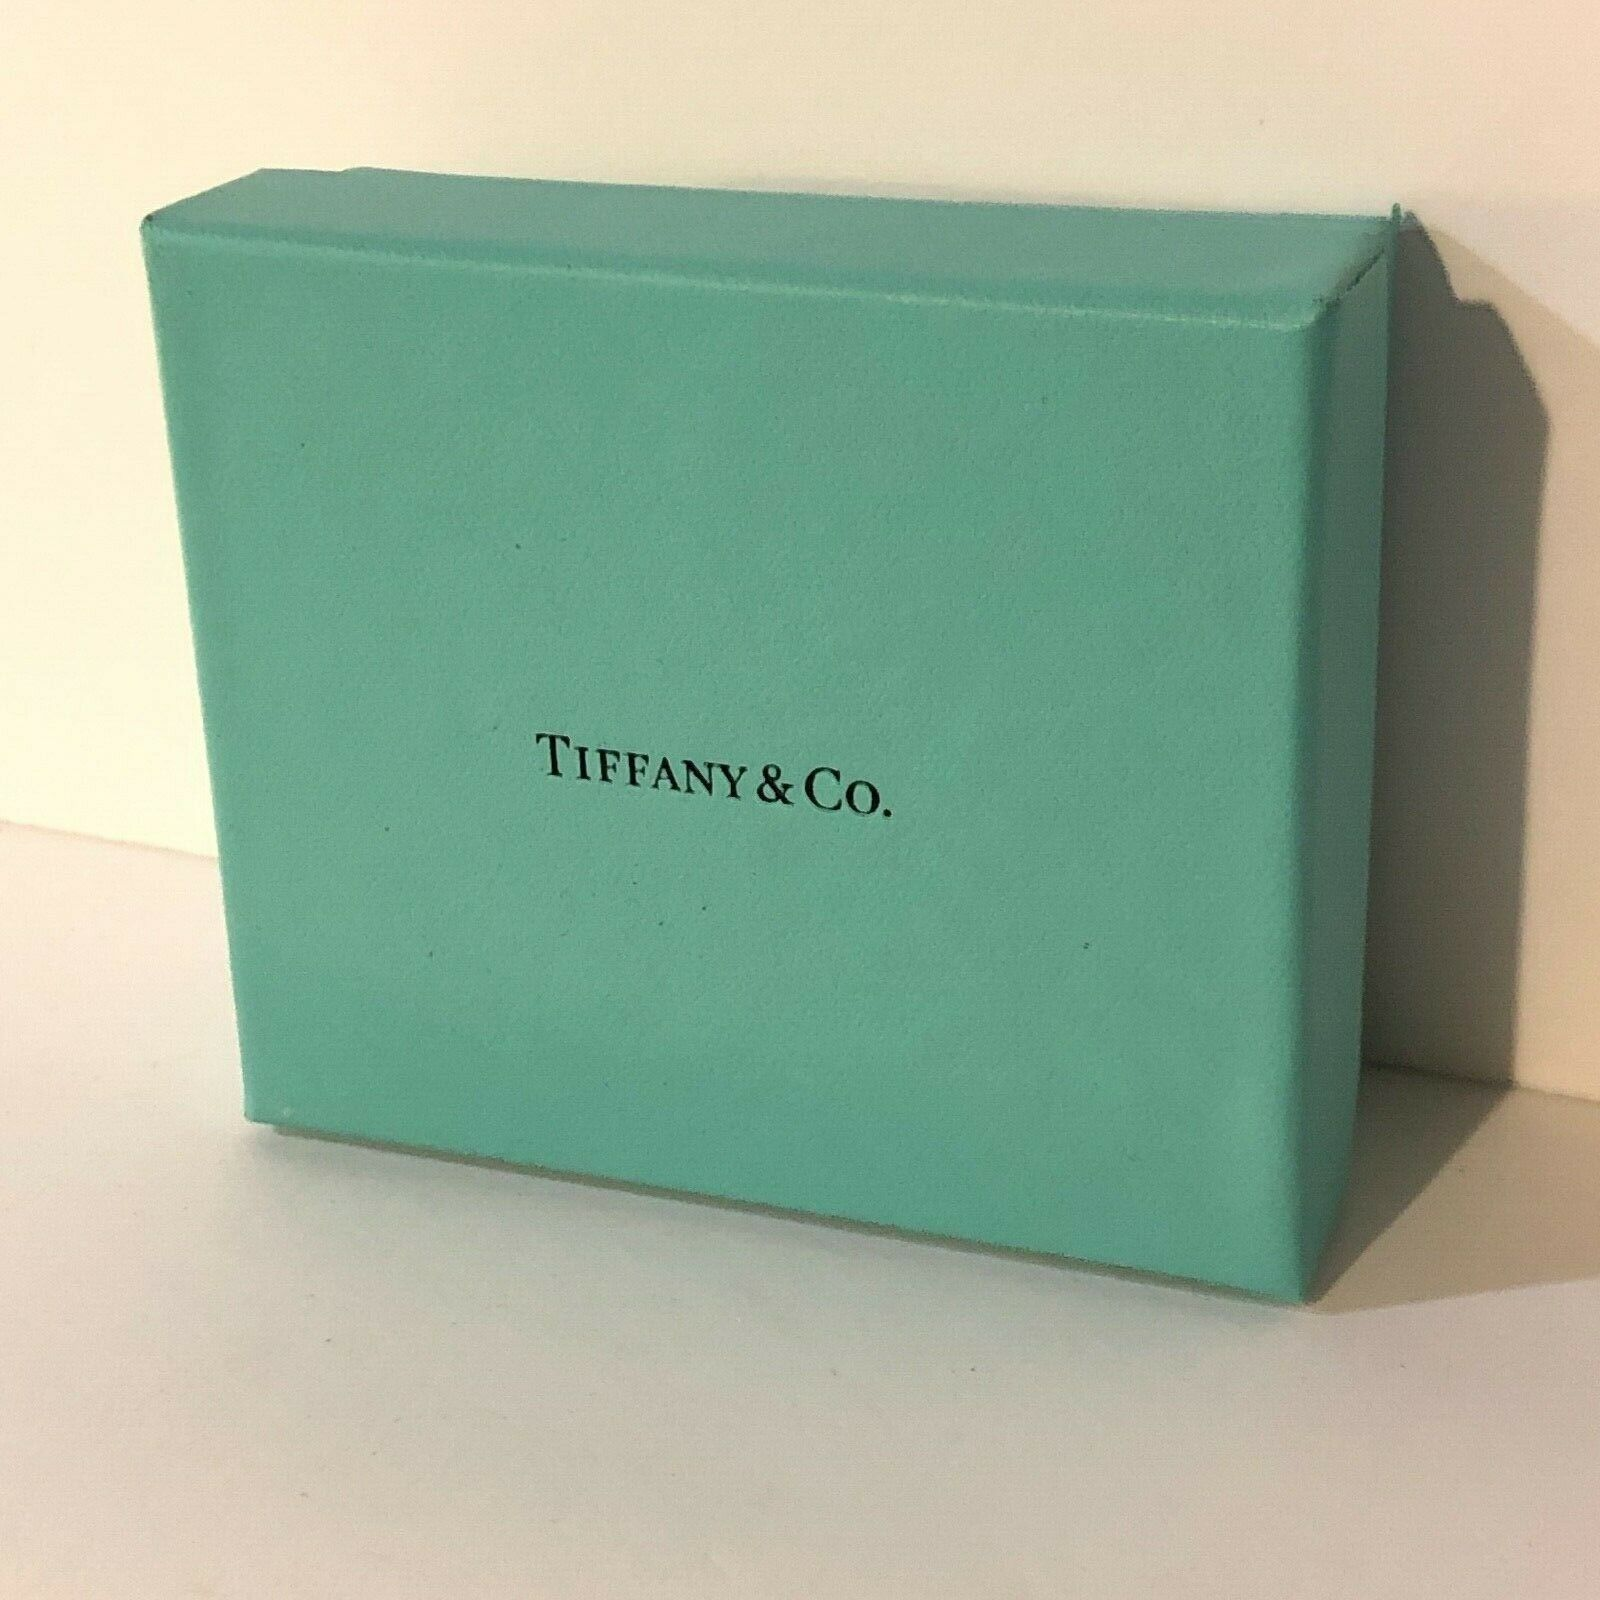 70112ca3a4170 Authentic Tiffany & Co. Empty Jewelry Gift and 12 similar items